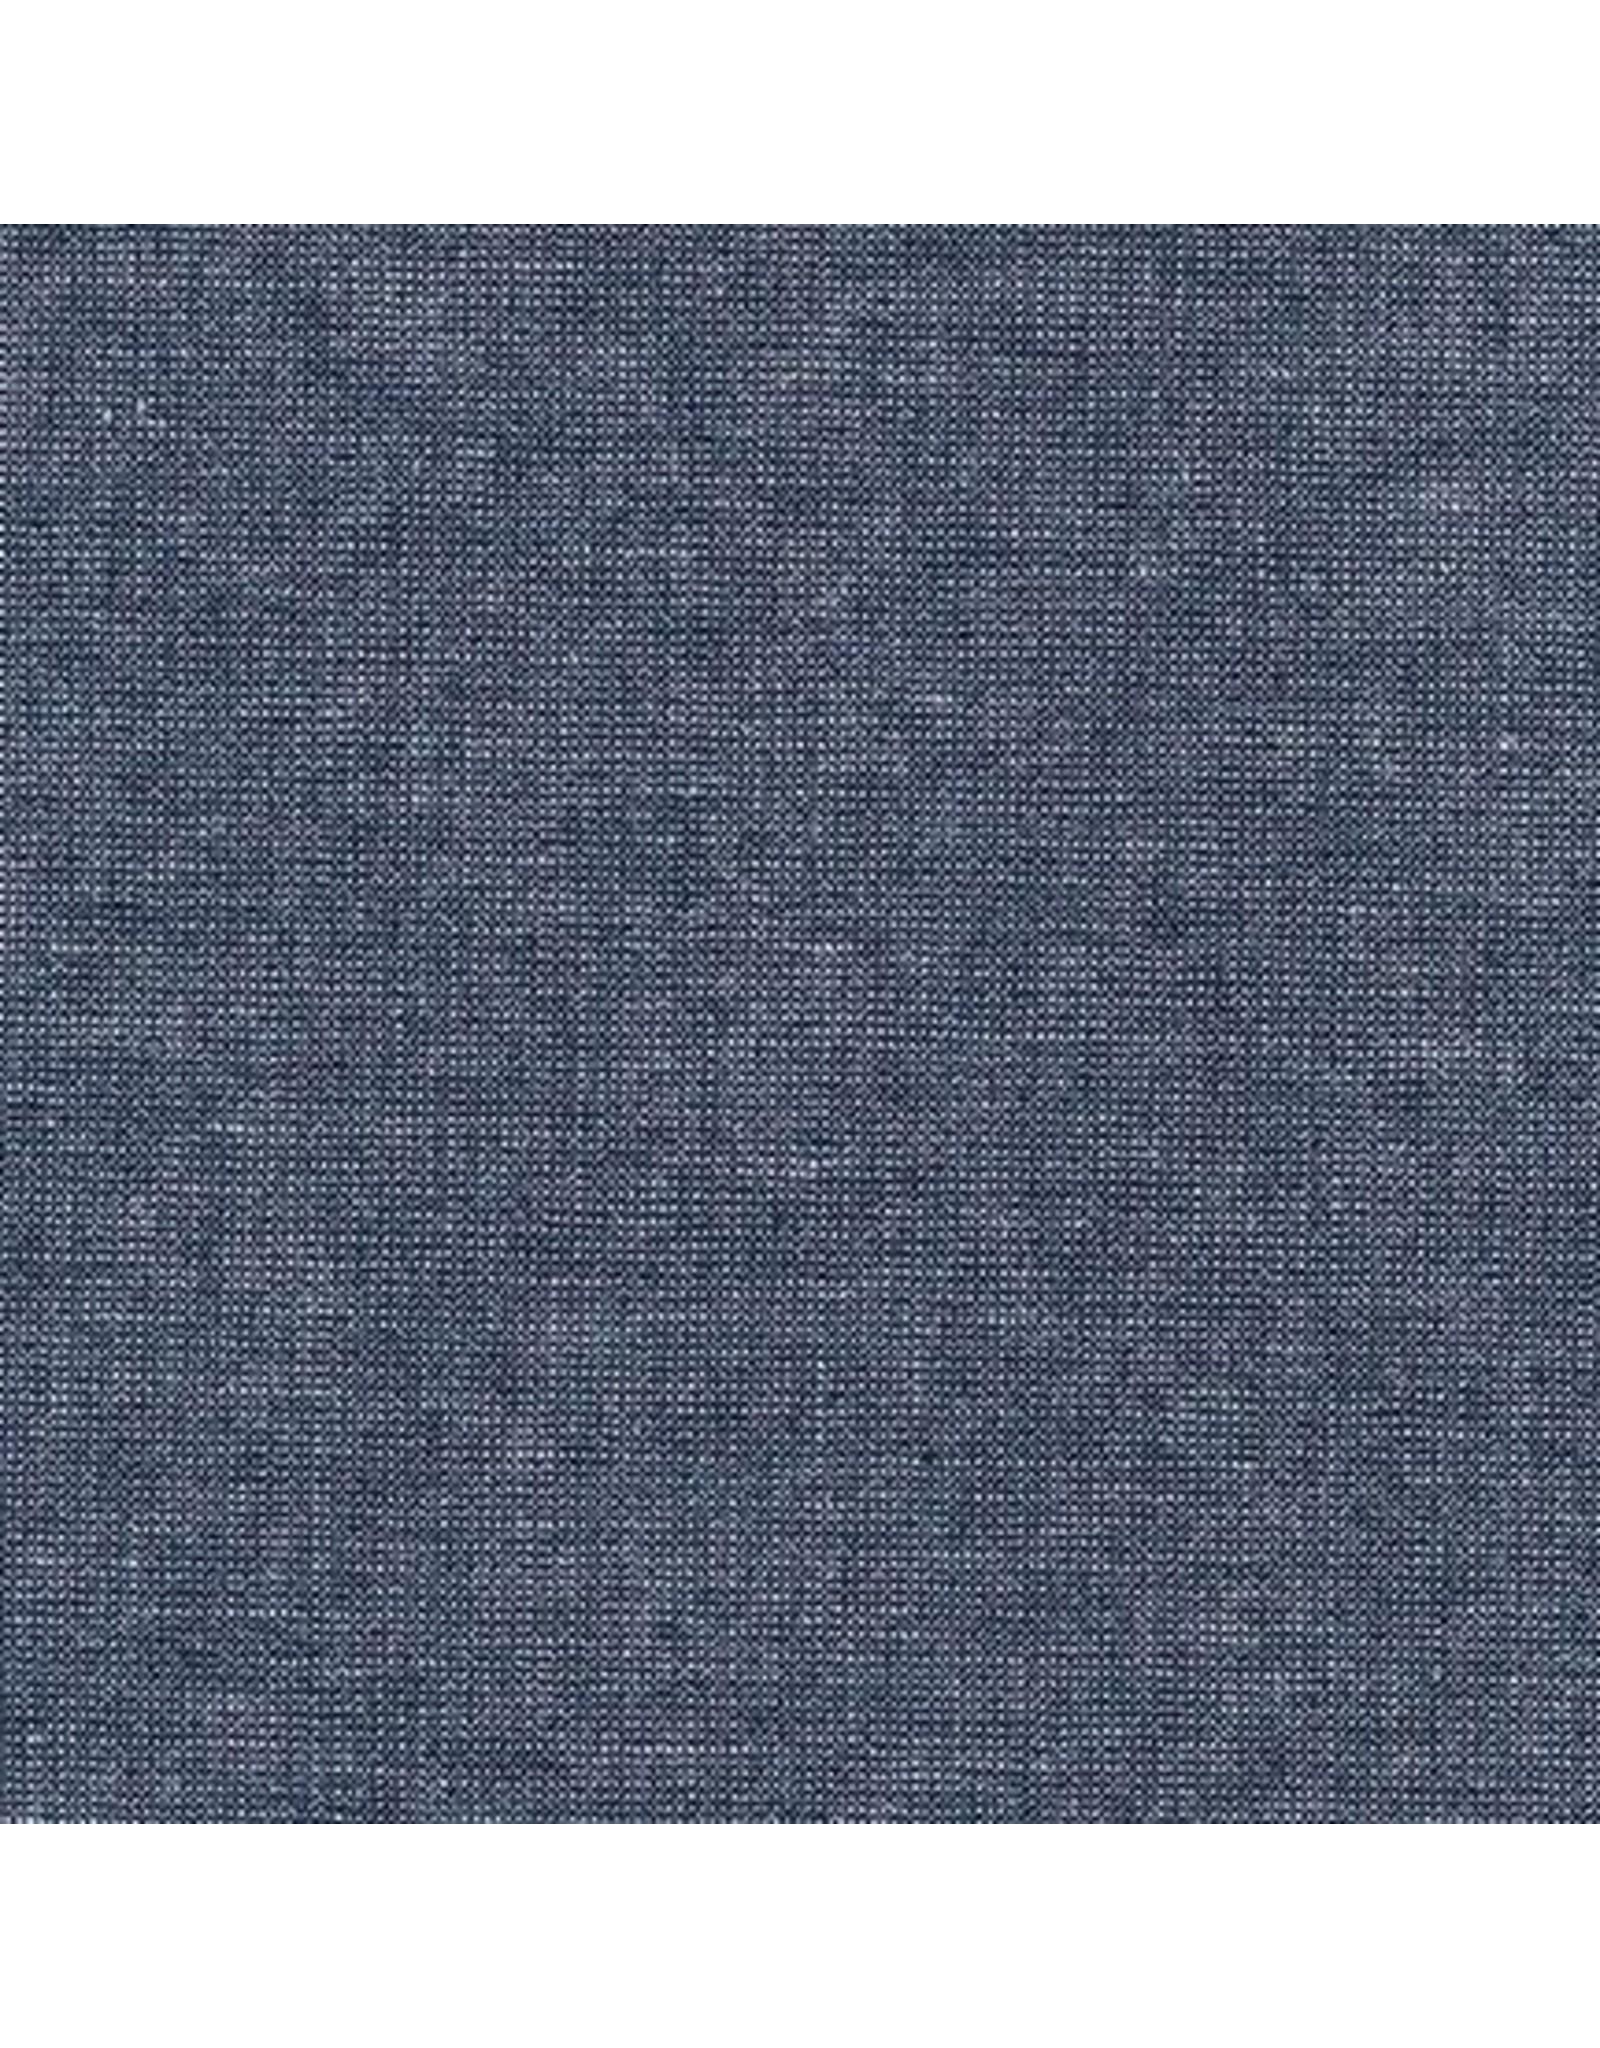 Robert Kaufman Linen, Essex Yarn Dyed Metallic in Midnight, Fabric Half-Yards E105-1232